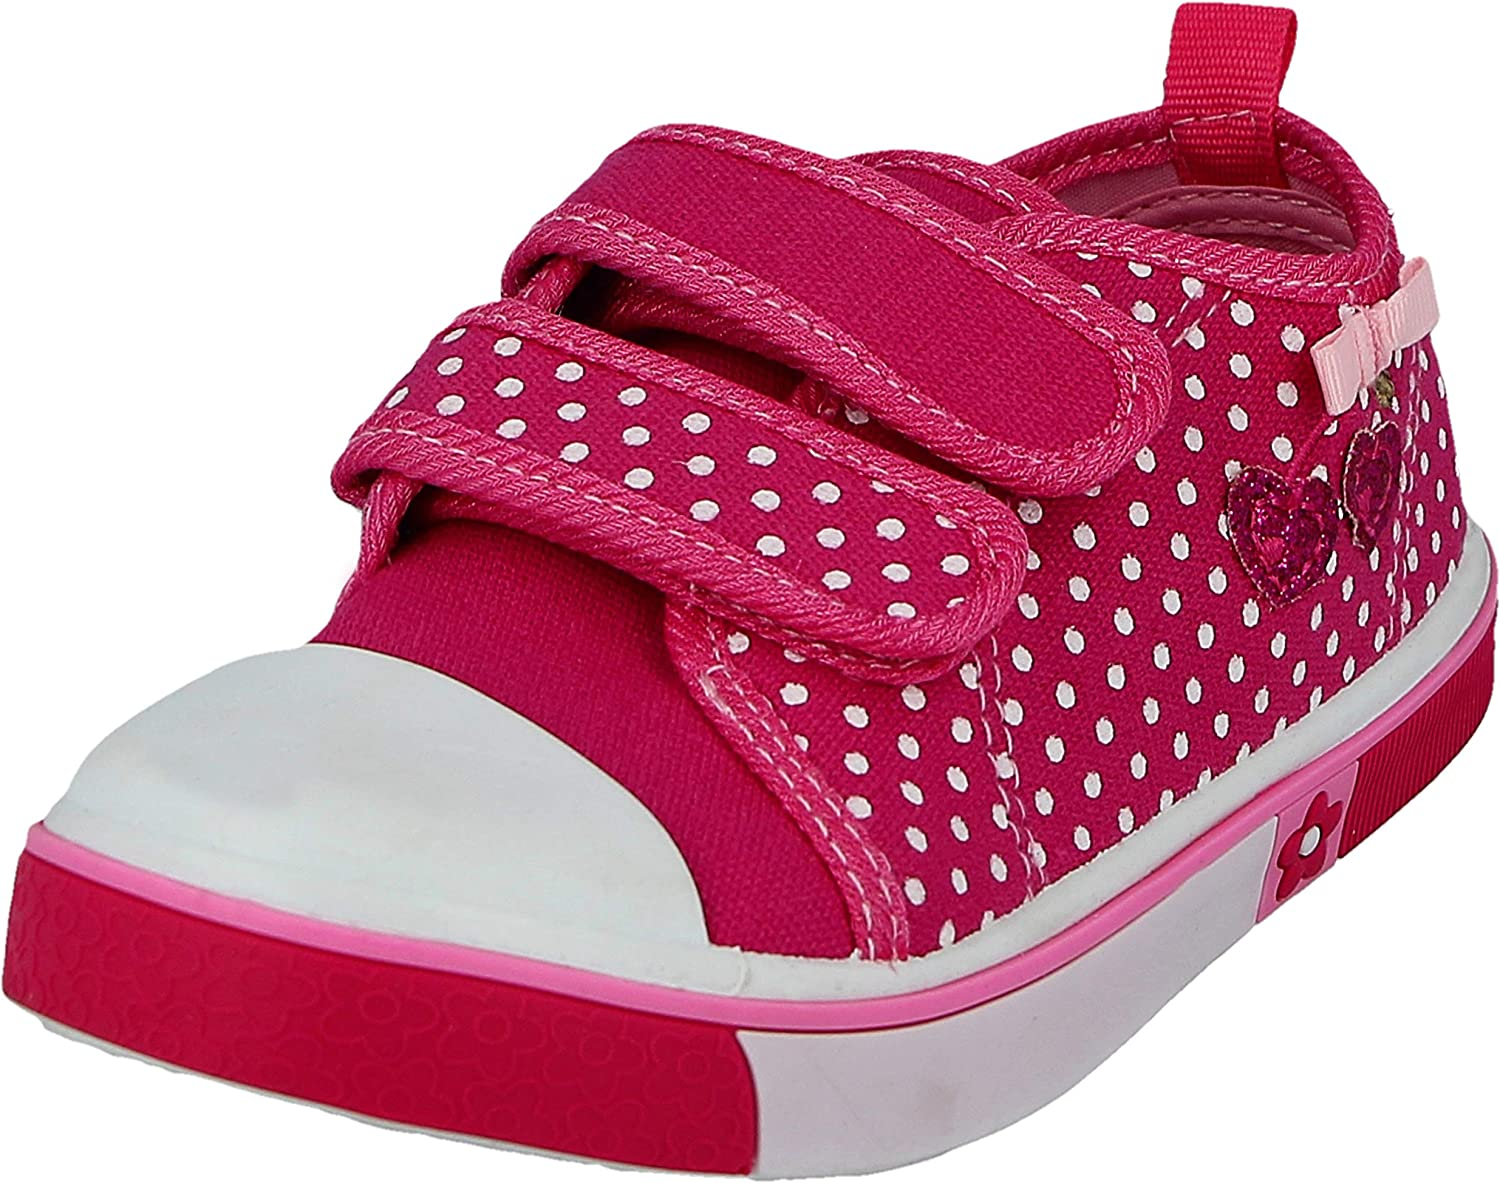 infant size 8 girls trainers